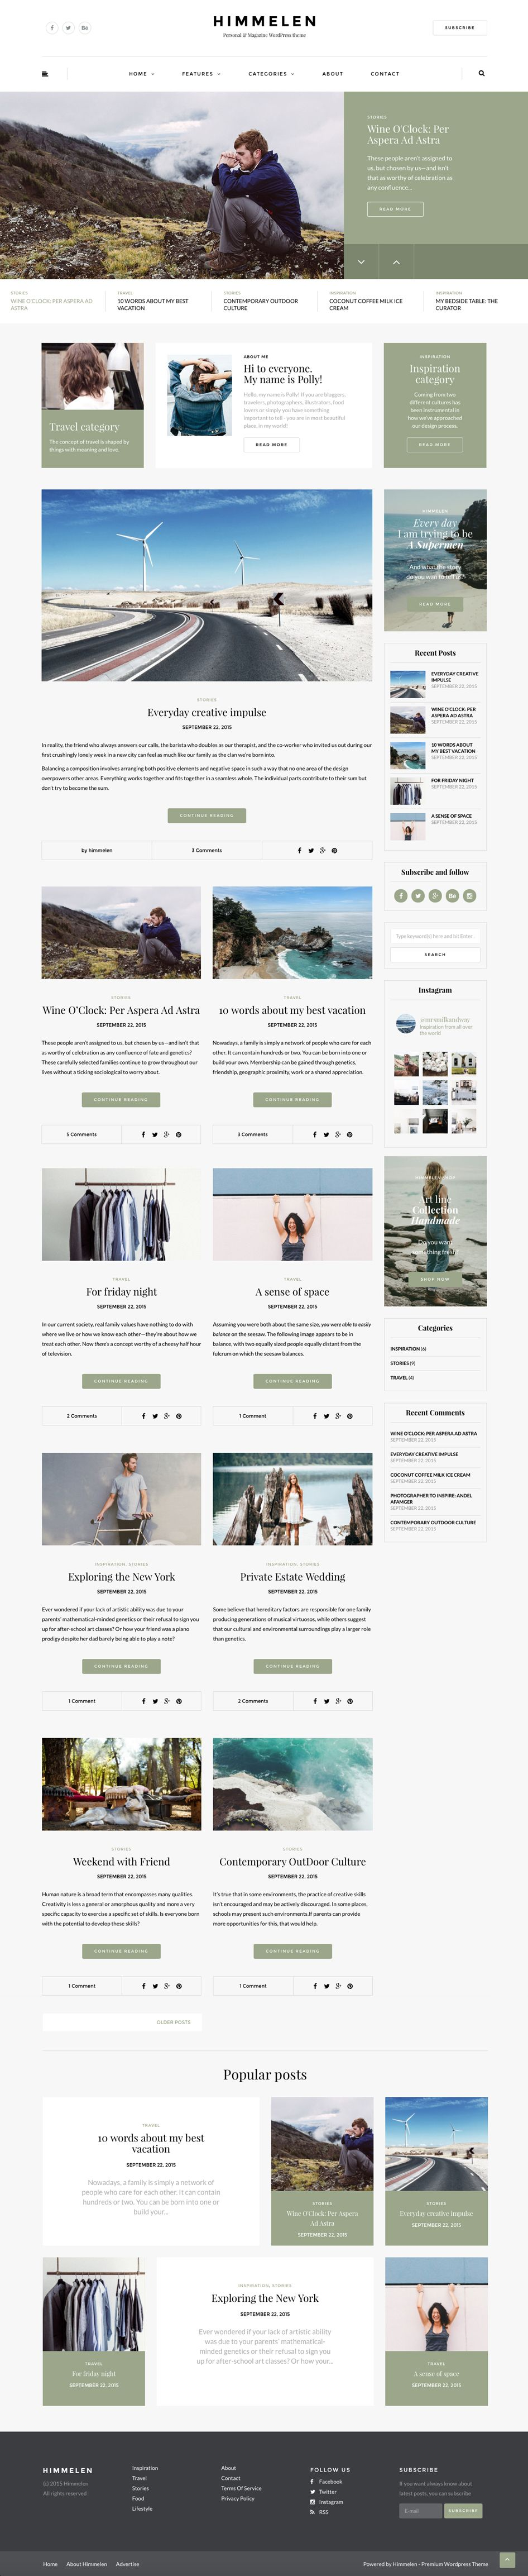 Himmelen main page small user interface design ideas pinterest